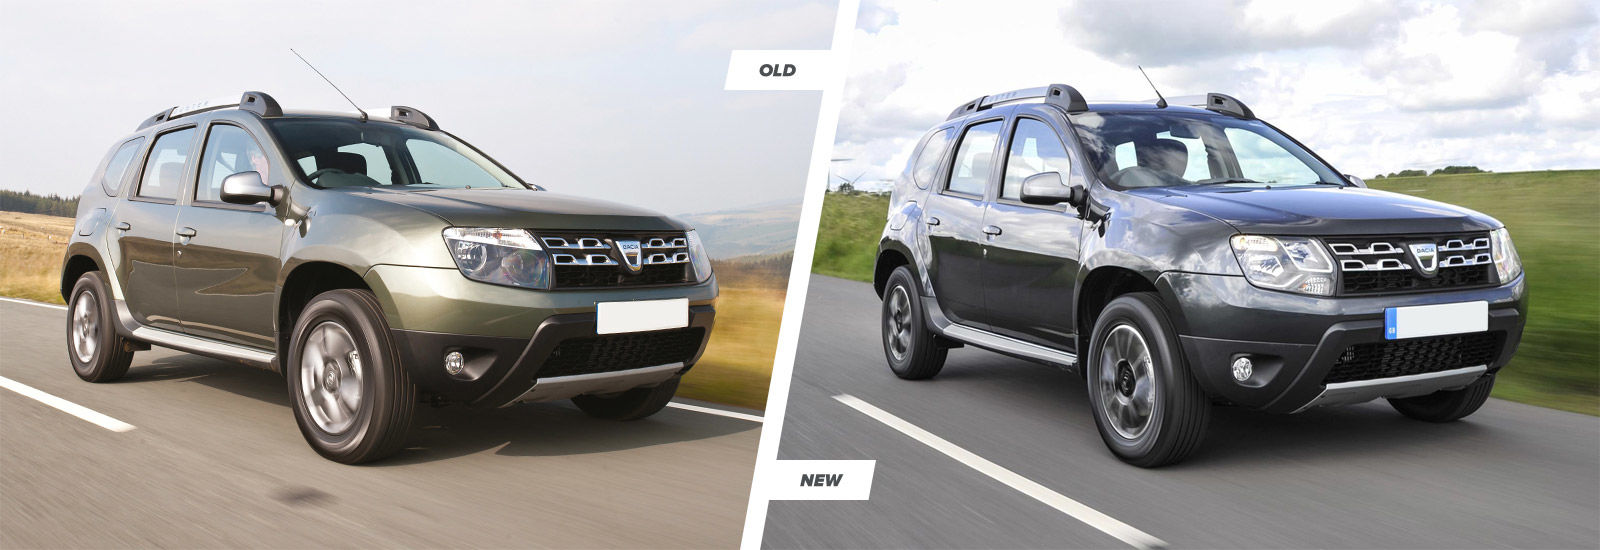 Dacia Duster 2016 Facelift Complete Guide Carwow